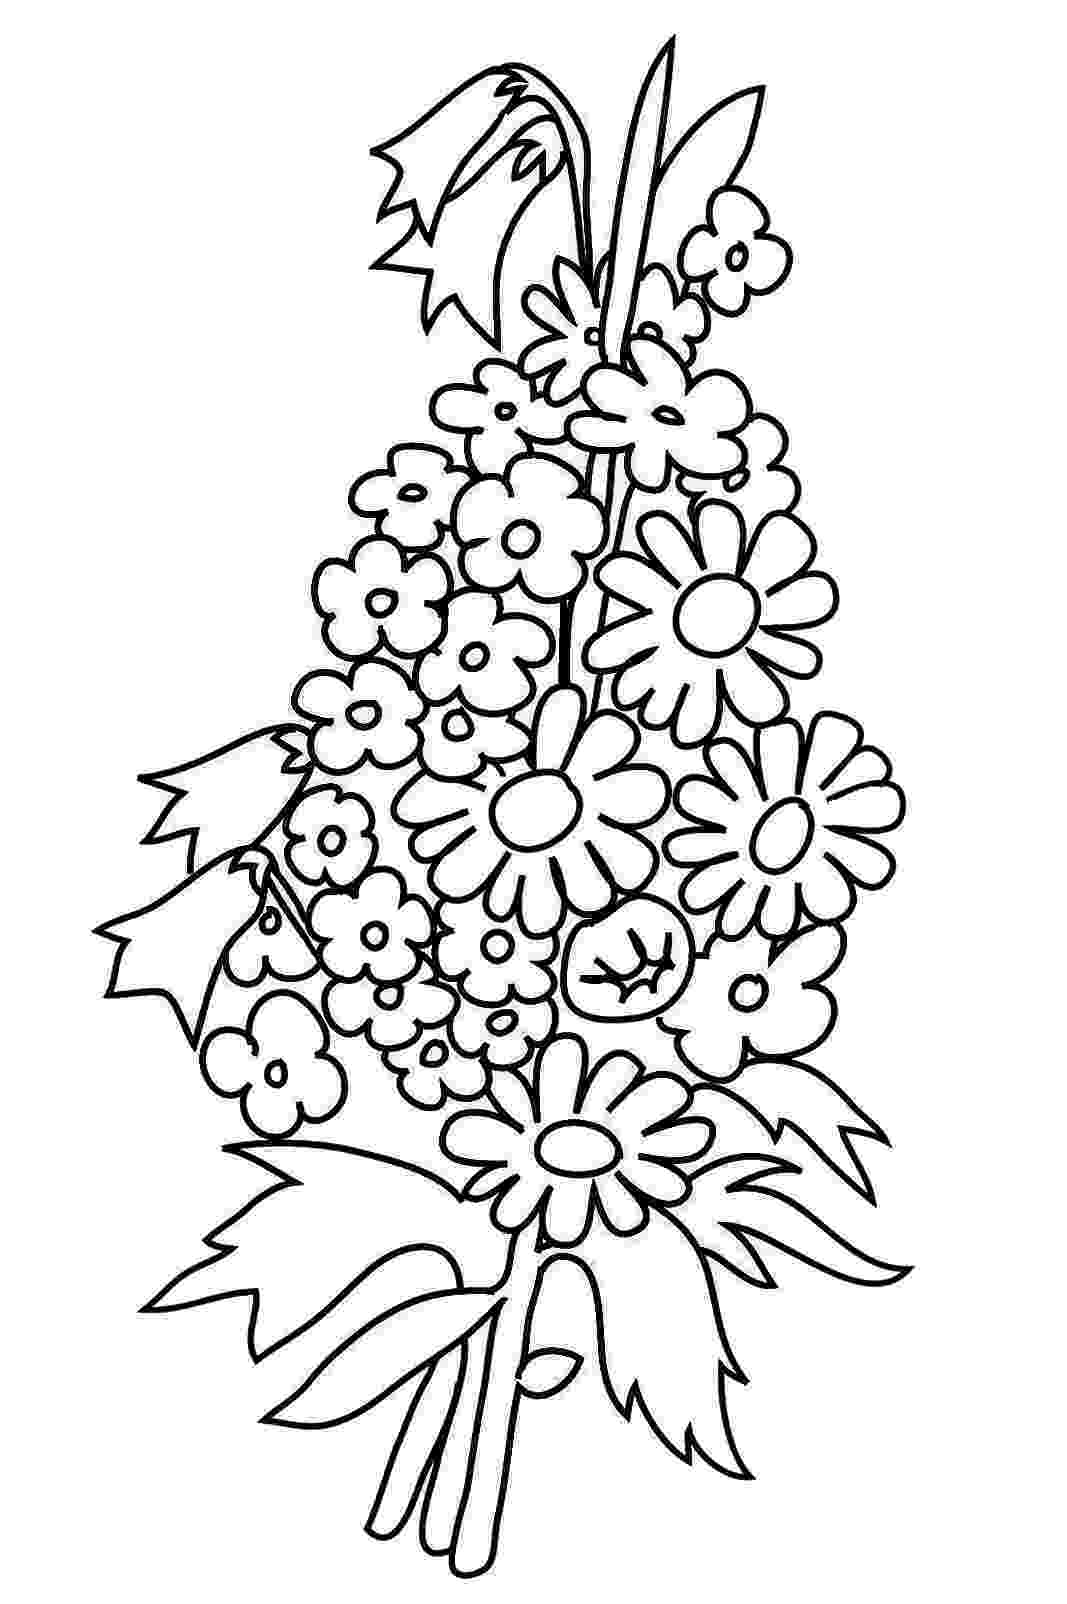 flowers color pages detailed flower coloring pages to download and print for free pages color flowers